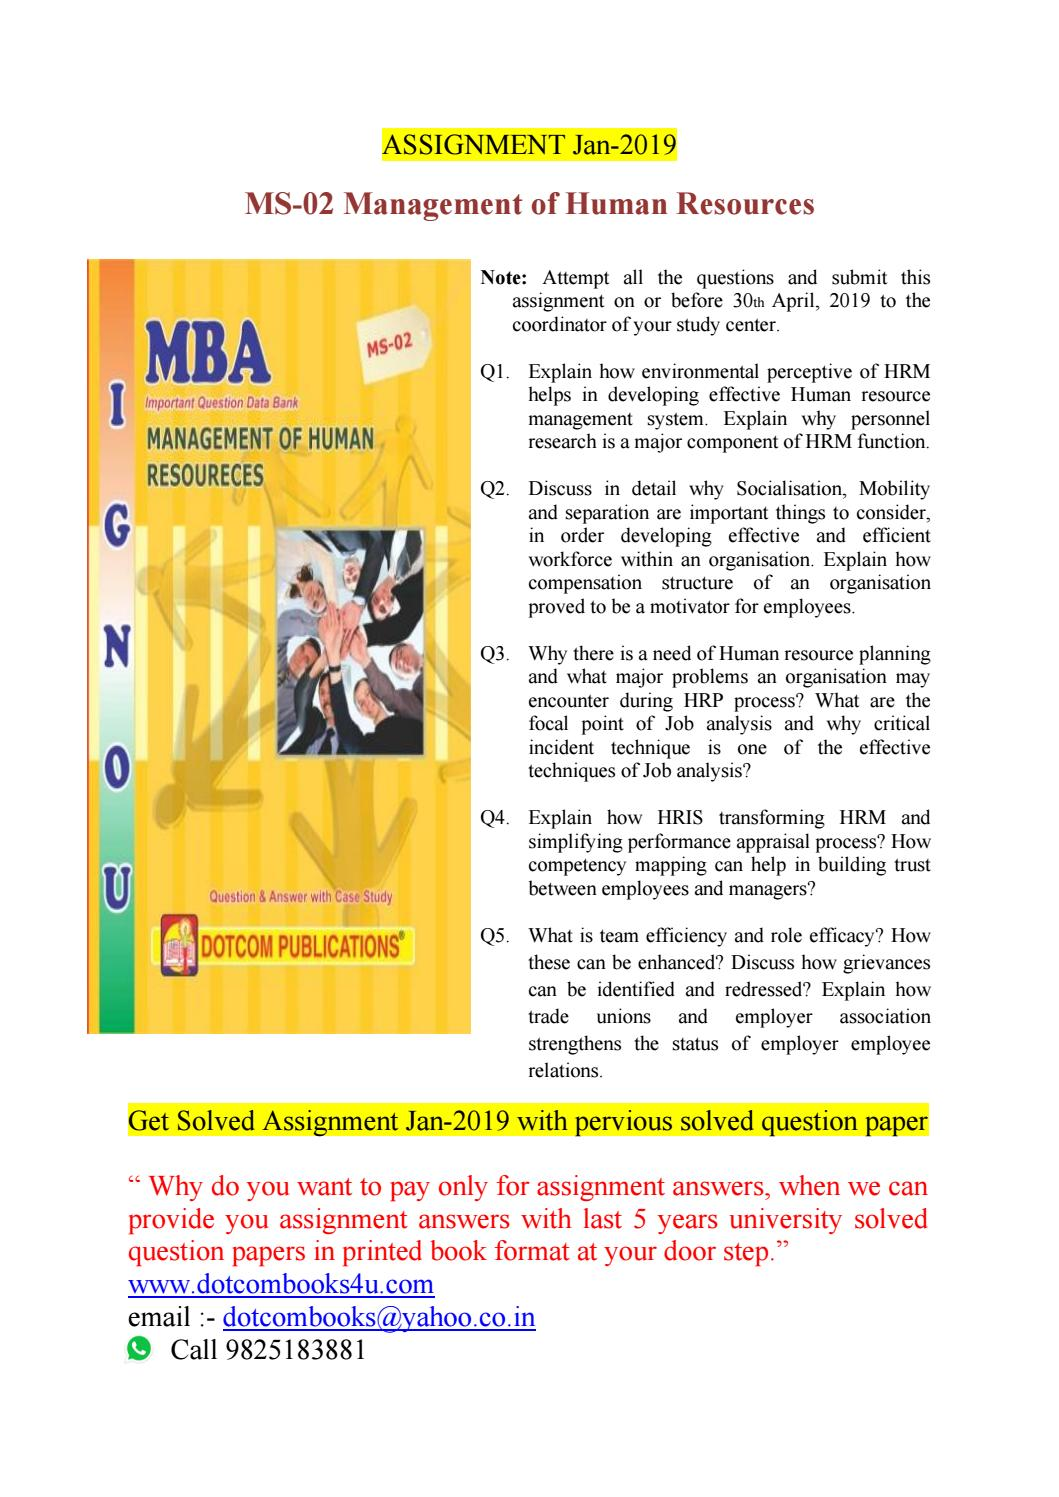 MS-02 Management of Human Resources by dotcombooks - issuu